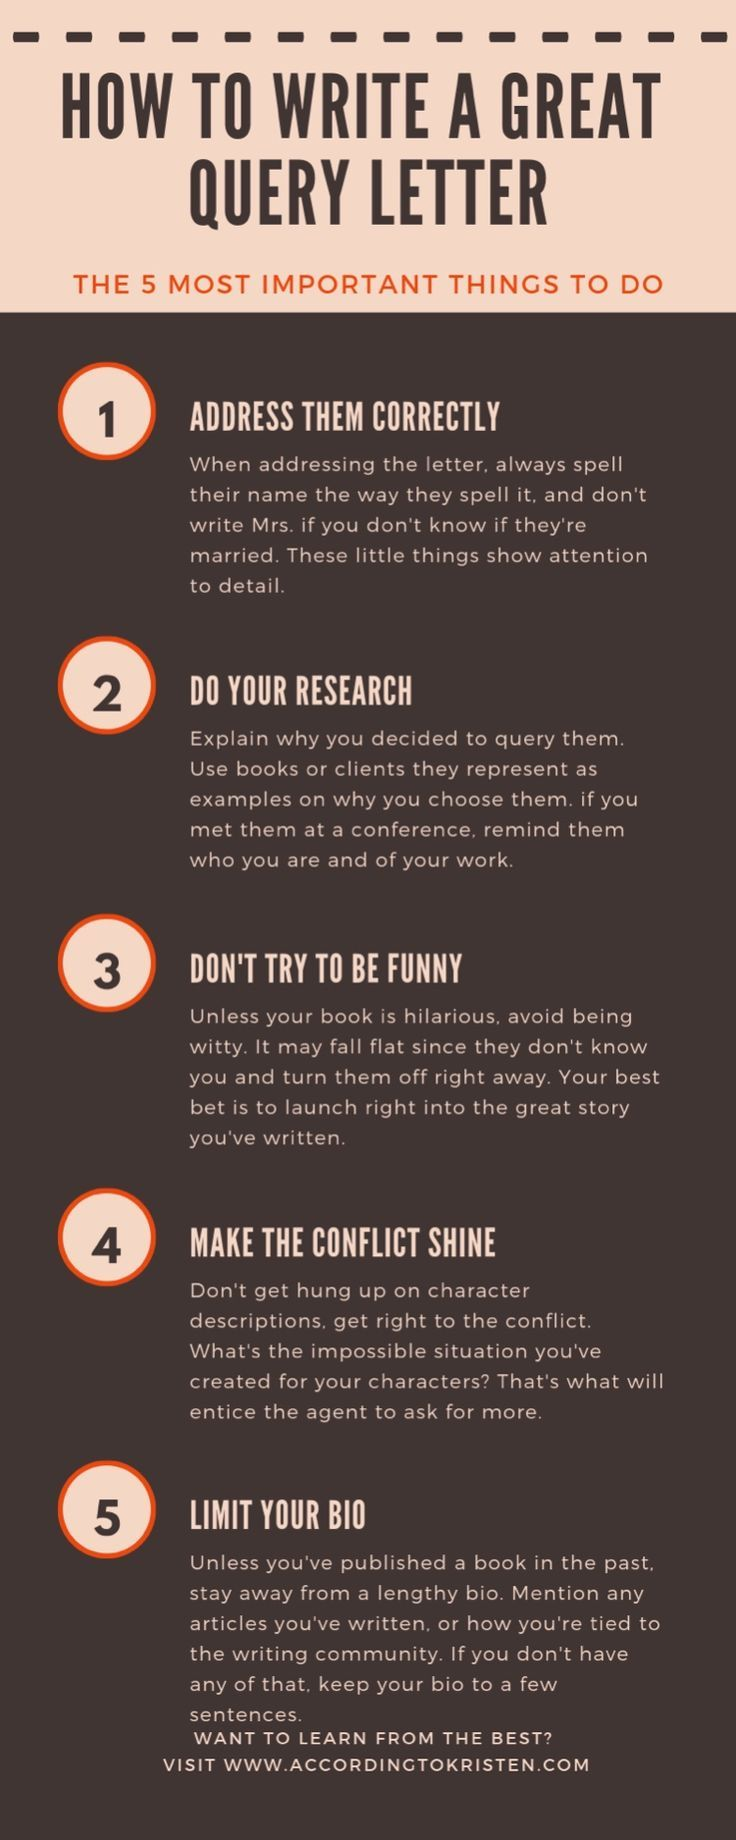 How to Write a Great Query Letter (With images) Query